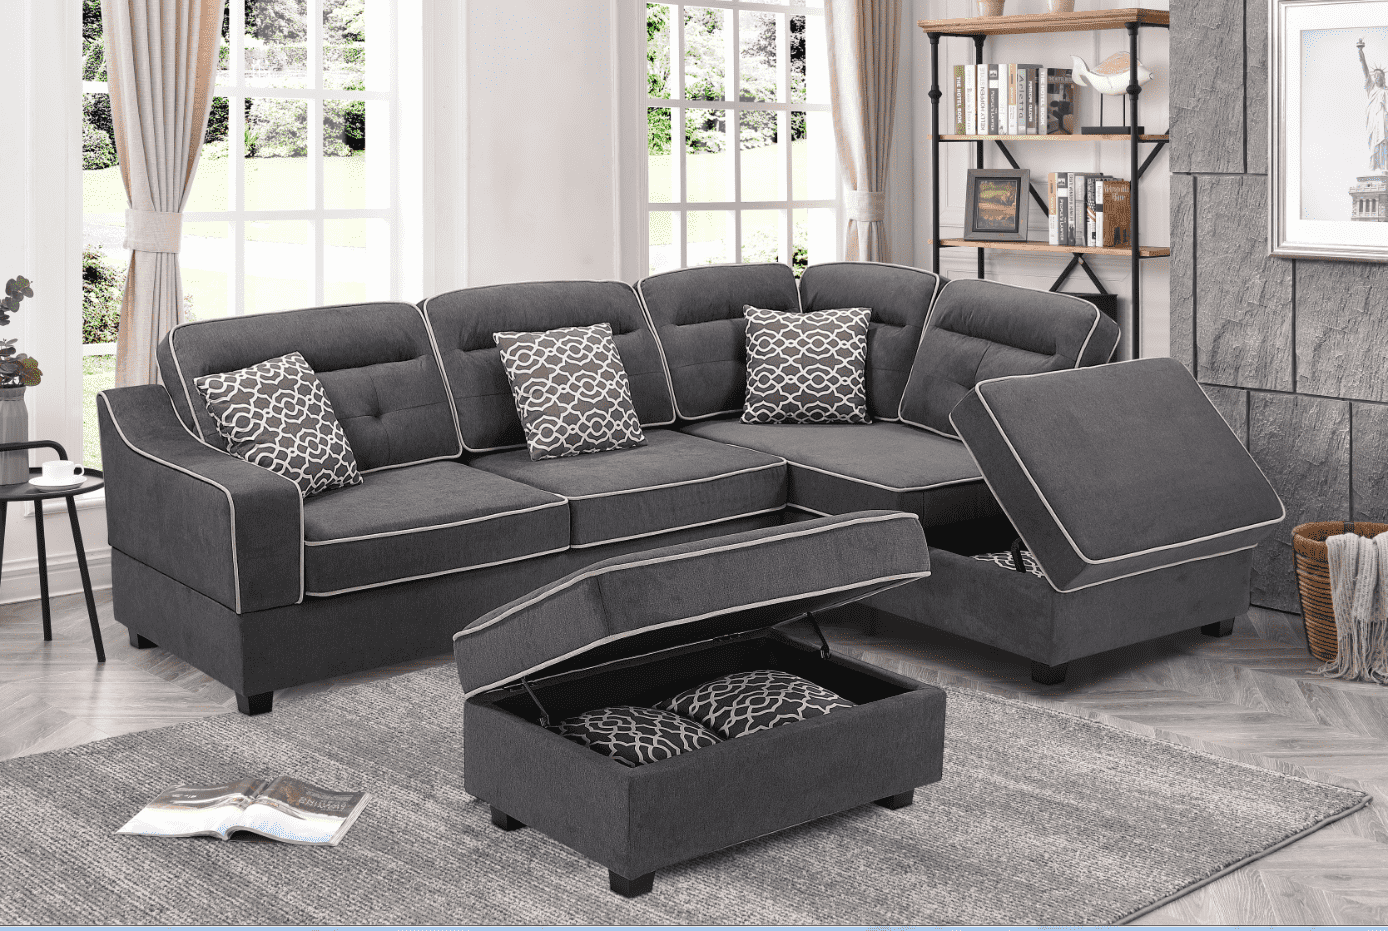 Cory Fabric Sectional with Storage Ottomans - Richicollection Furniture Warehouse